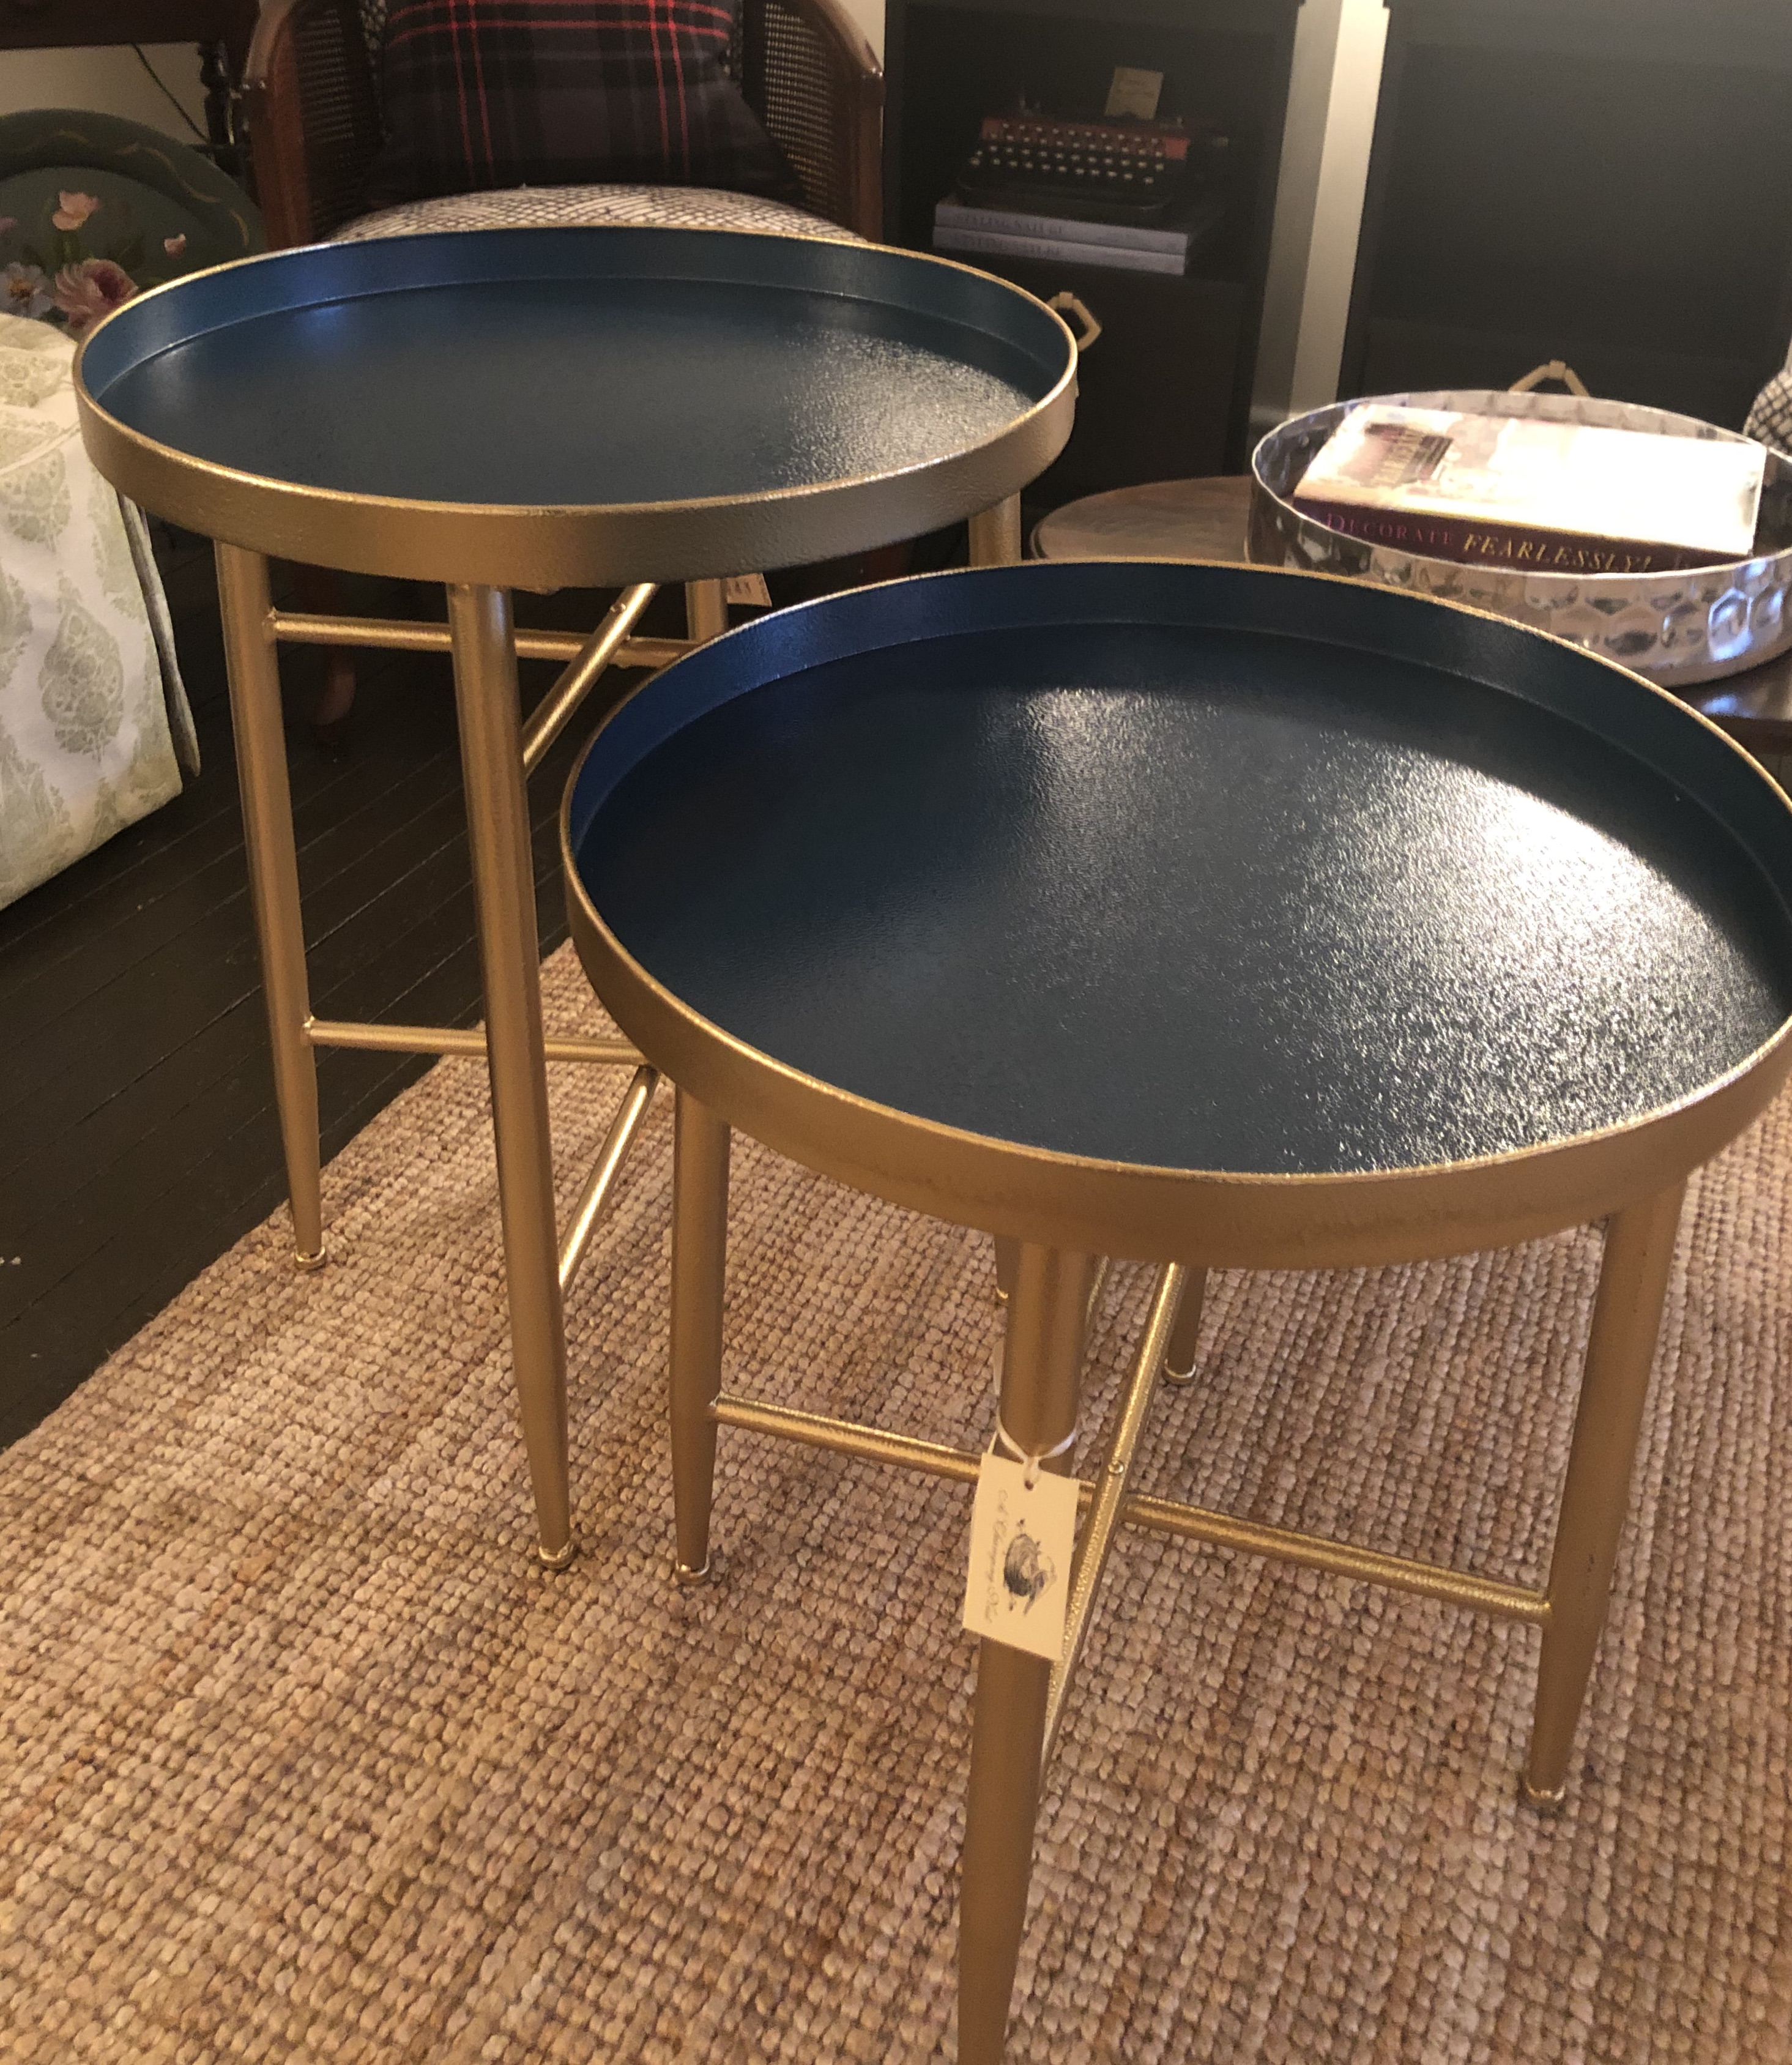 Hammered Blue and Gold Sidetable